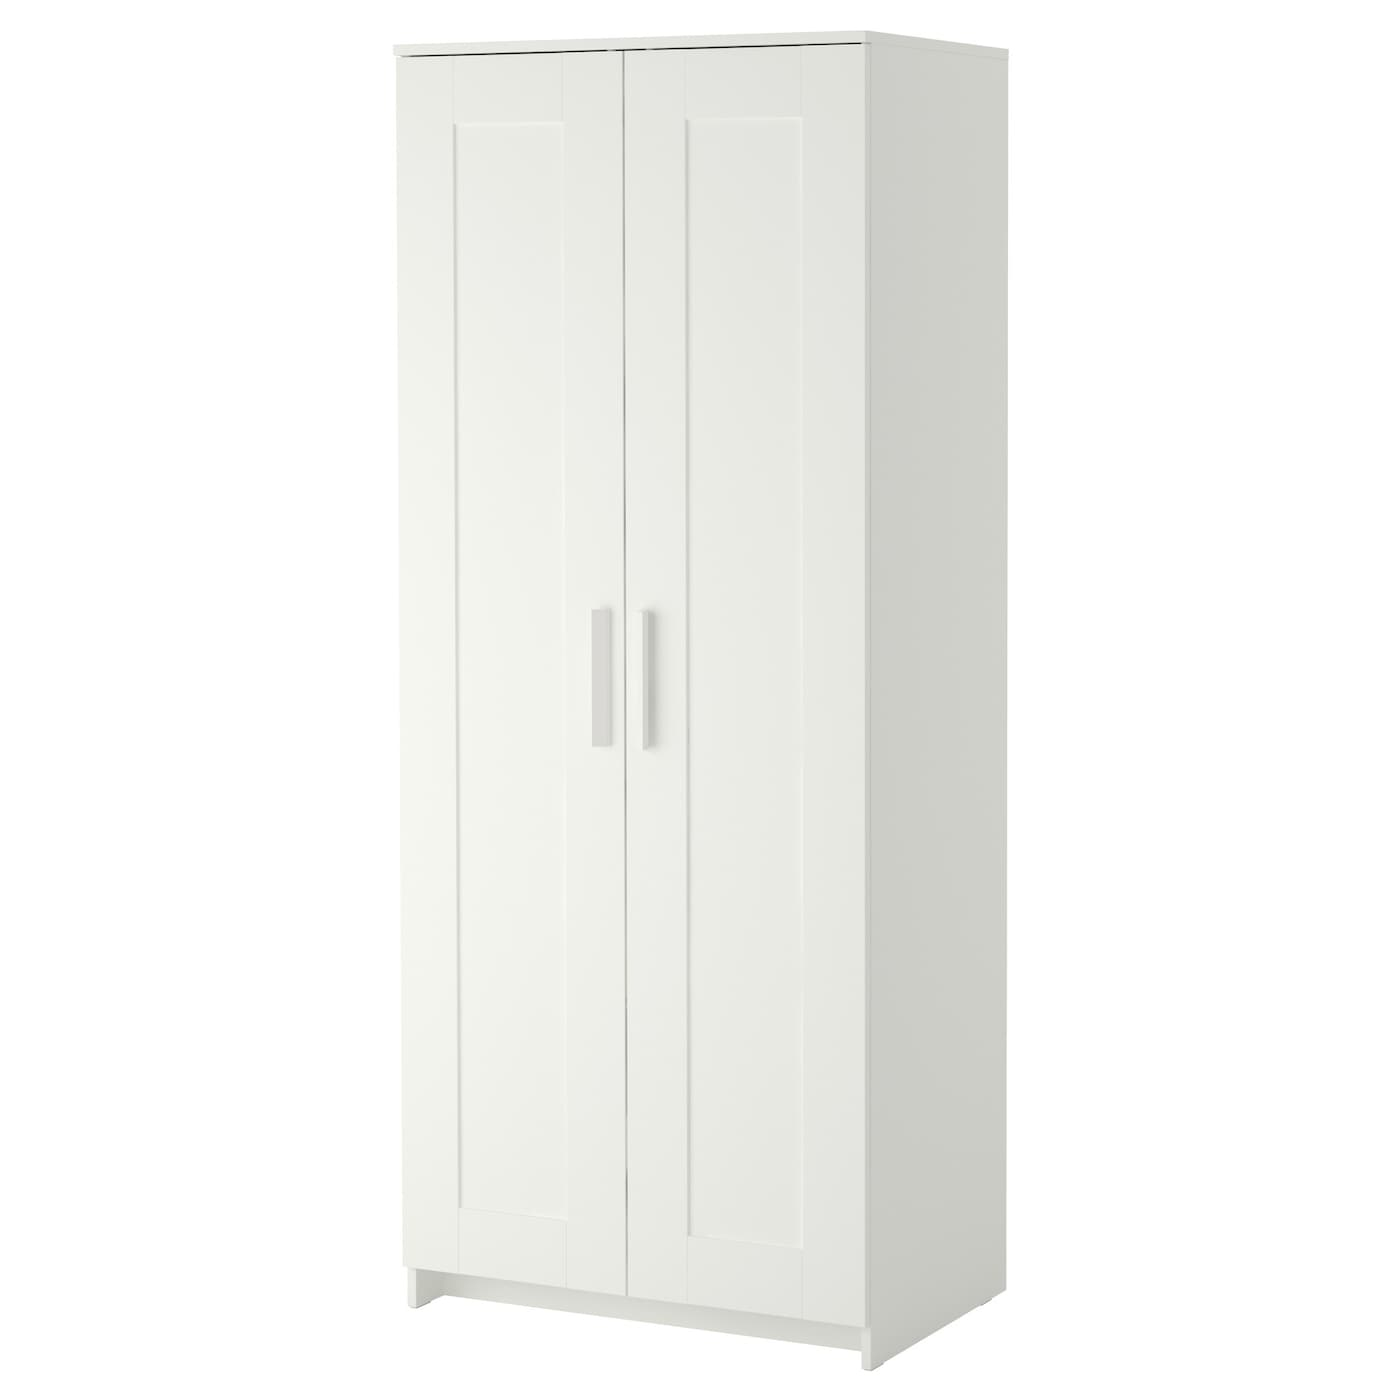 Ikea Fyndig Kitchen Reviews ~ IKEA BRIMNES wardrobe with 2 doors Perfect for folded as well as long